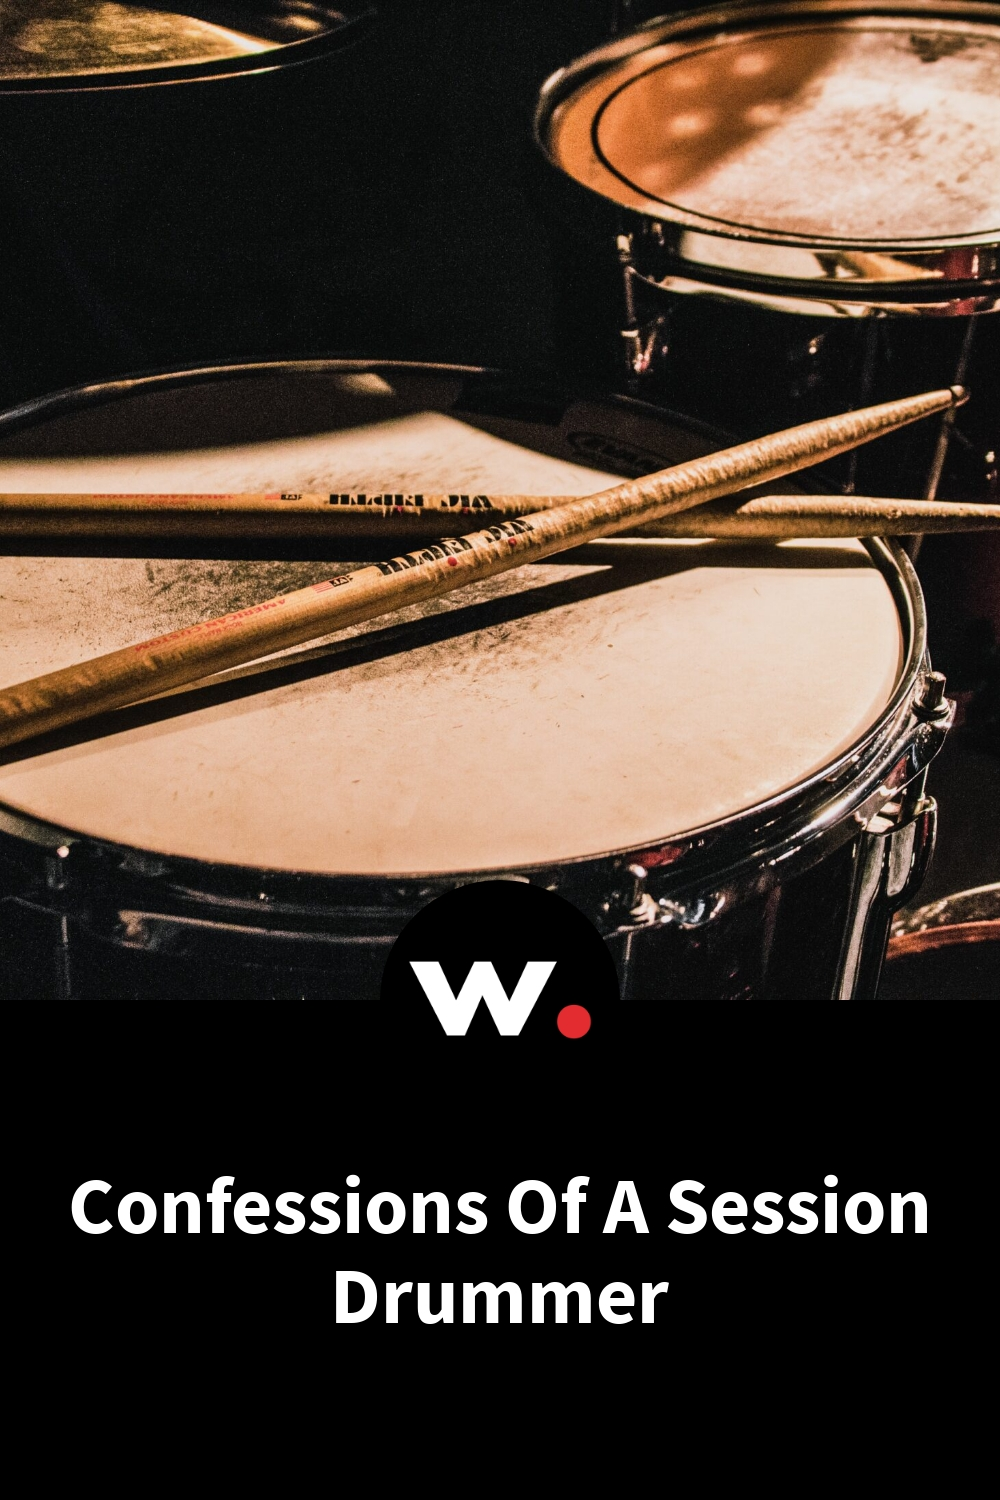 Confessions Of A Session Drummer